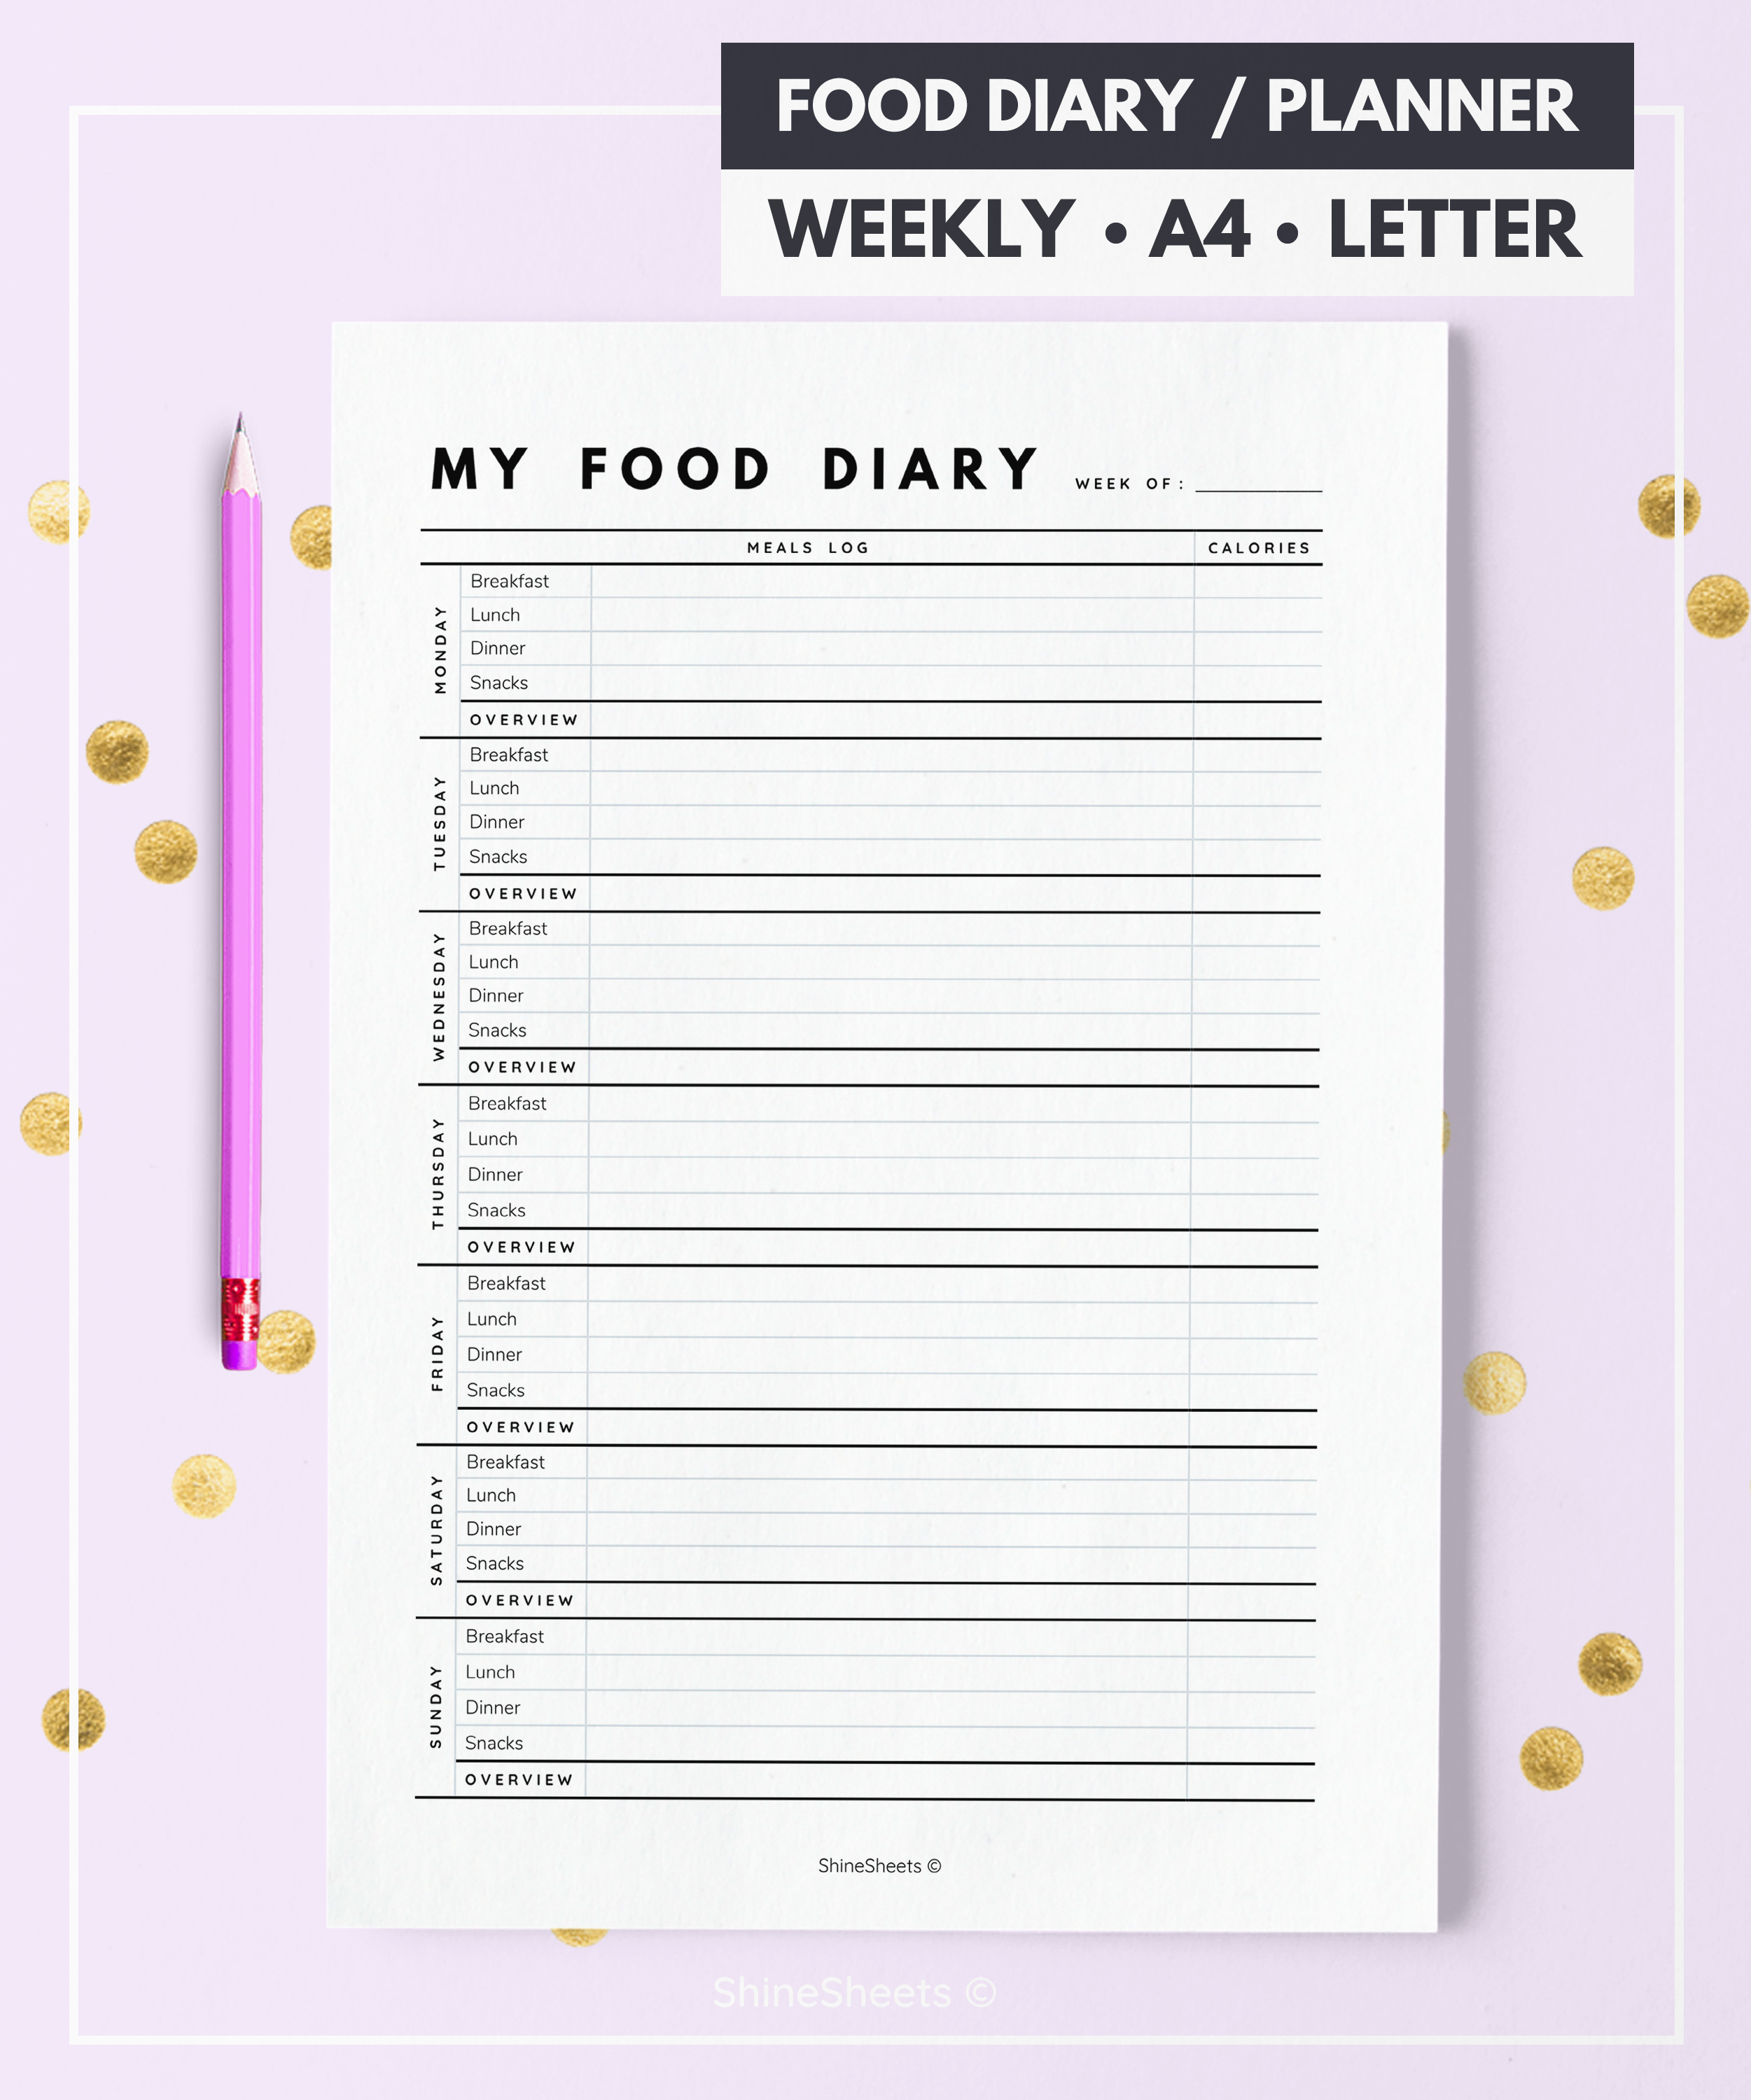 food diary food tracker diet diary food journal food log